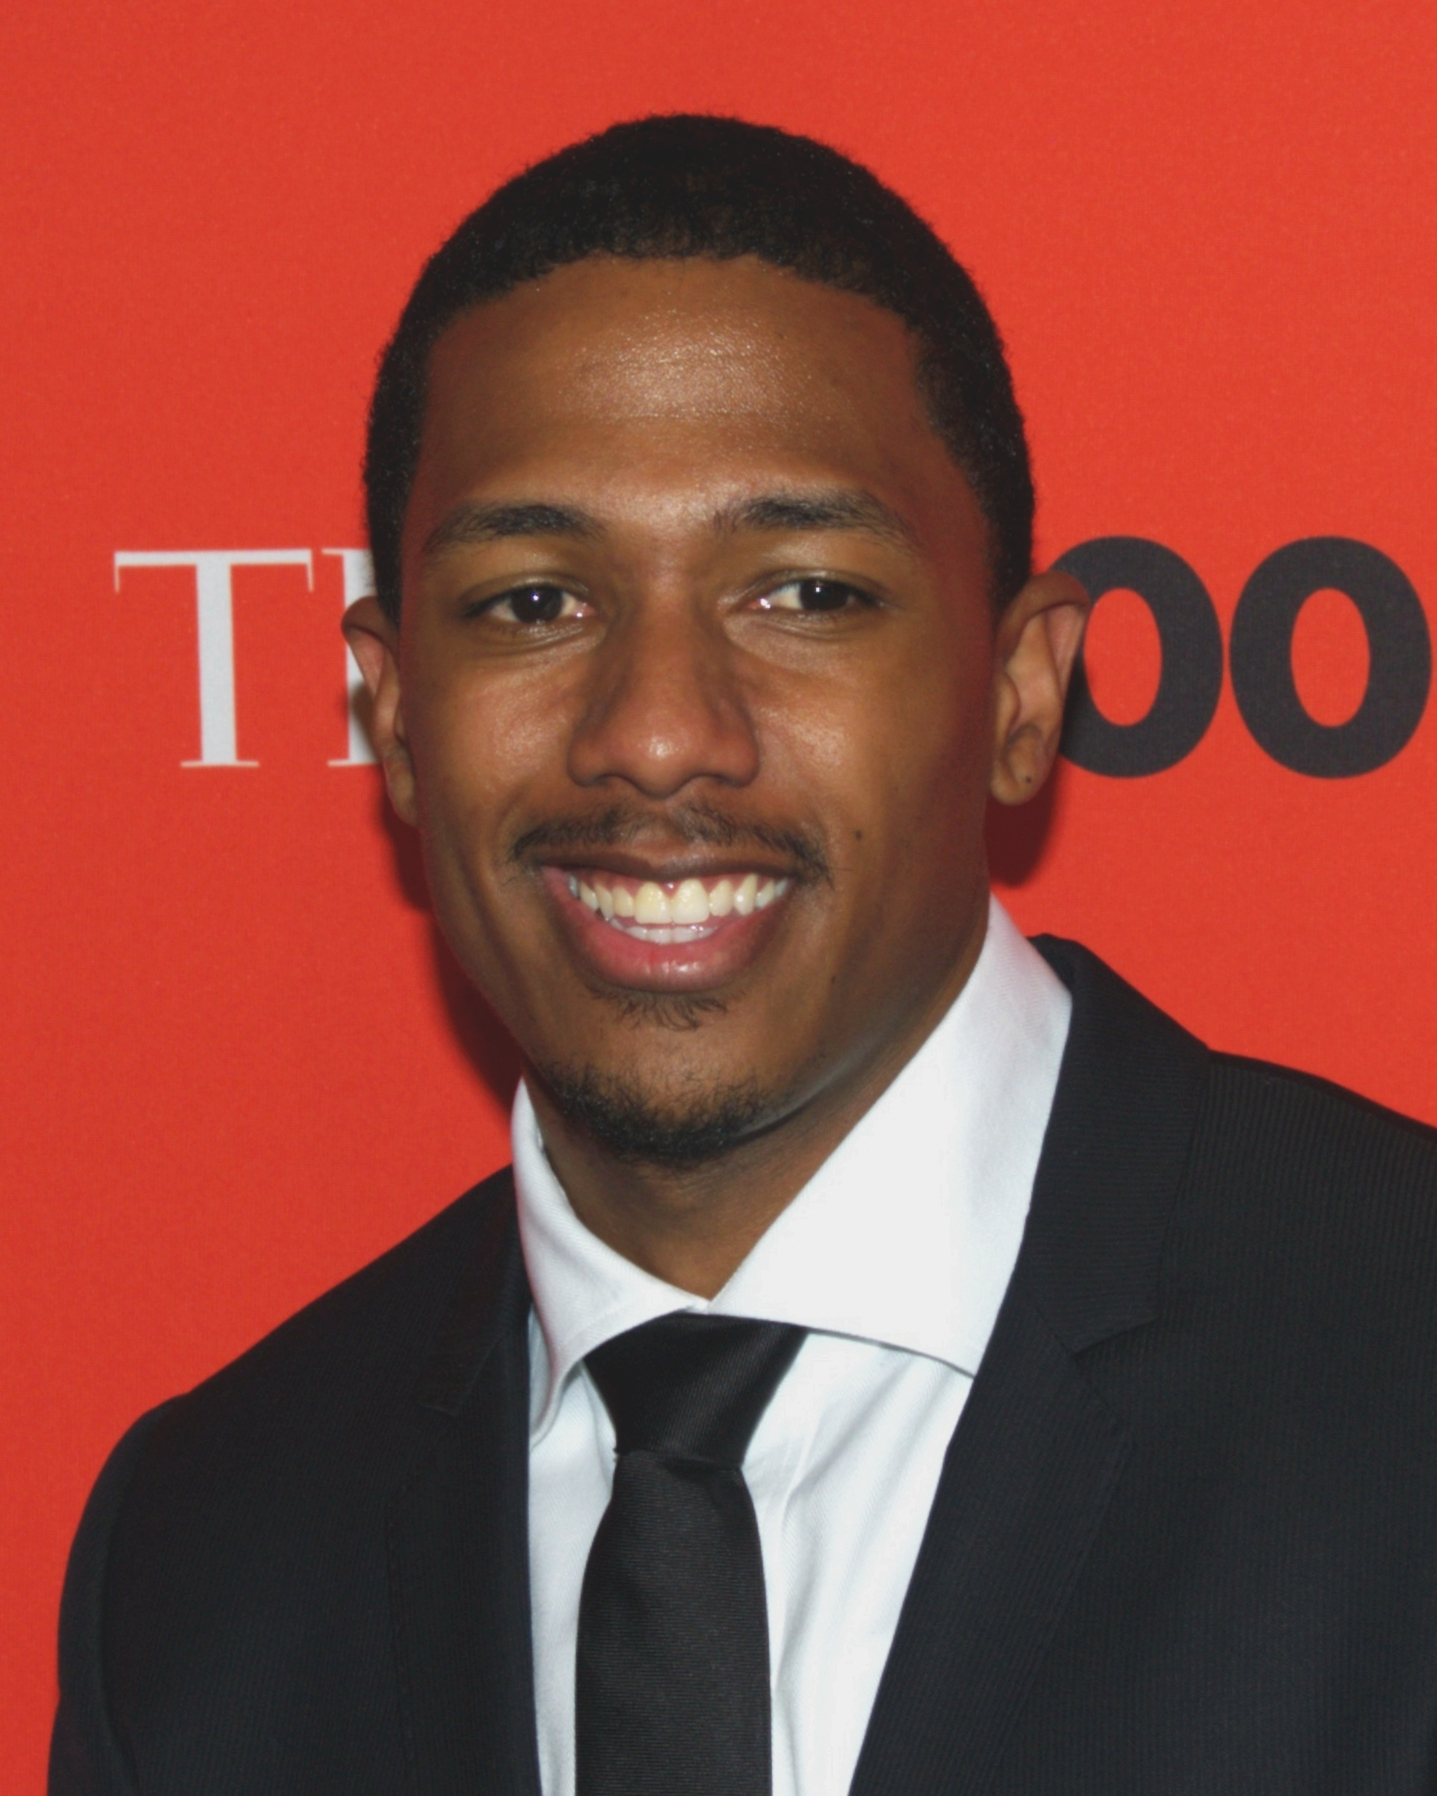 The 38-year old son of father James Cannon and mother Beth Gardner Nick Cannon in 2018 photo. Nick Cannon earned a  million dollar salary - leaving the net worth at 50 million in 2018